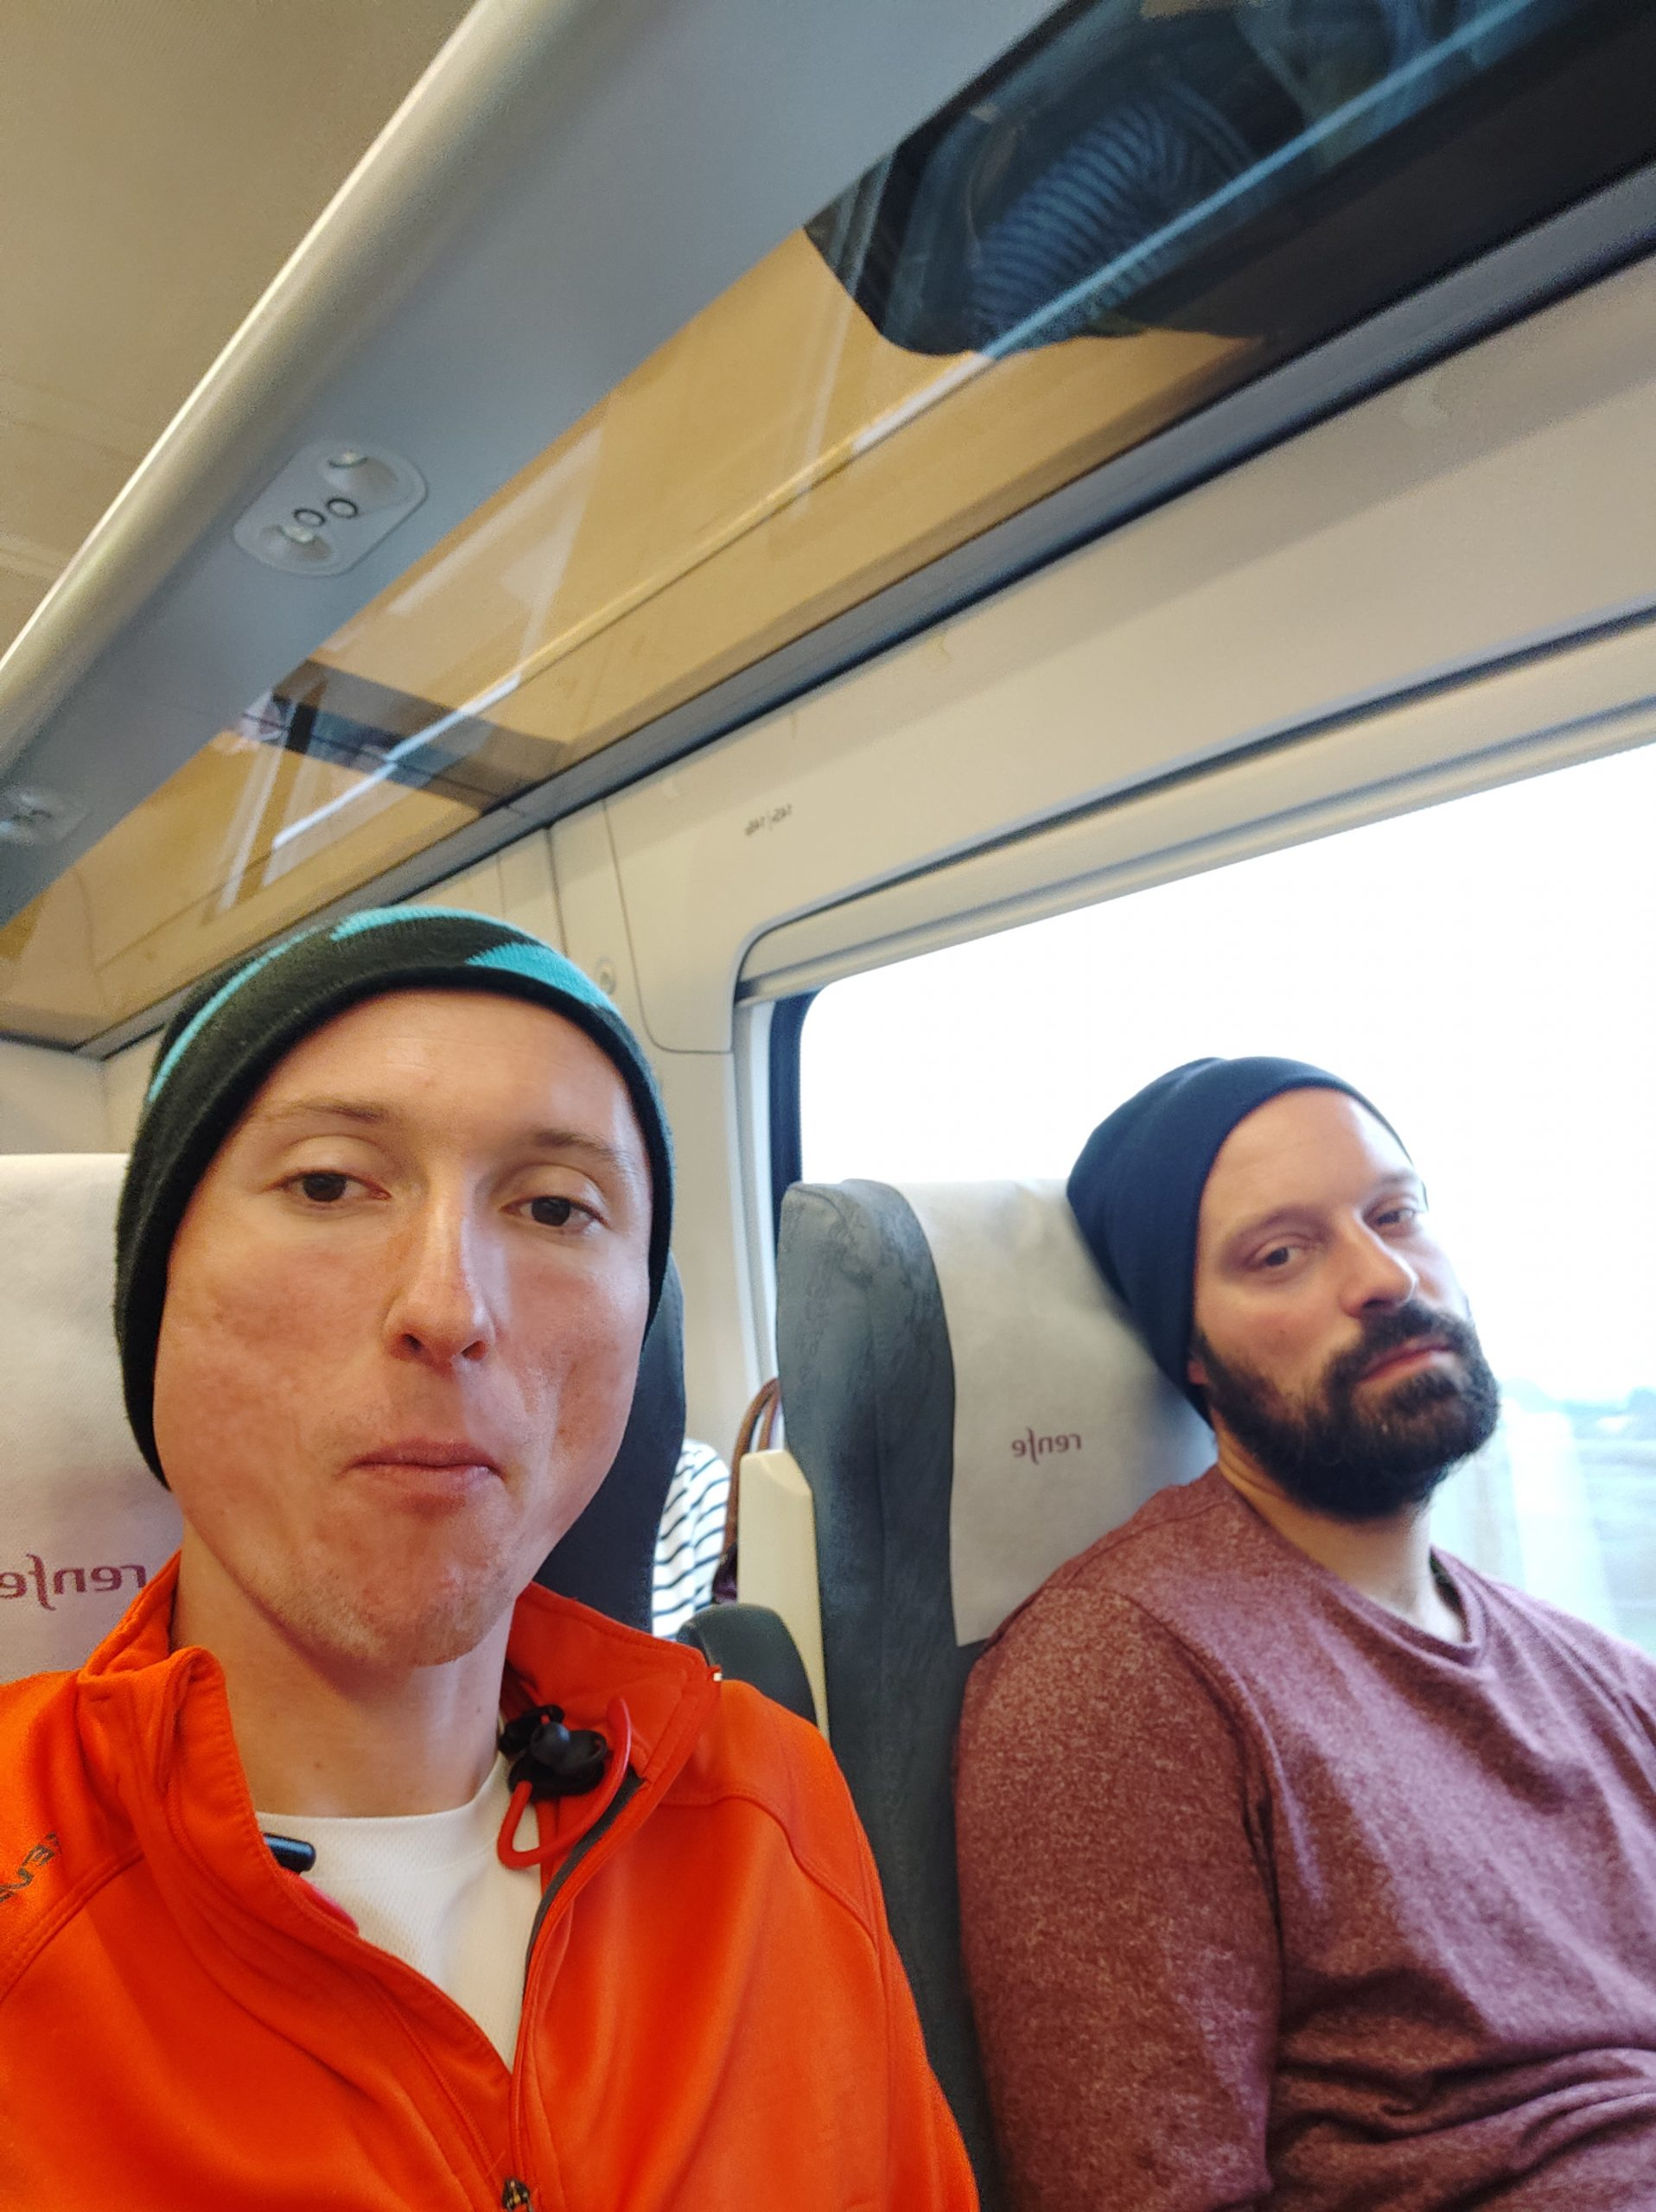 A bit tired, from two weeks of walking, riding down (the memory lane) in reverse directions from where we walked. The train was also quite nice, I think the speed was around 150-200km/h.